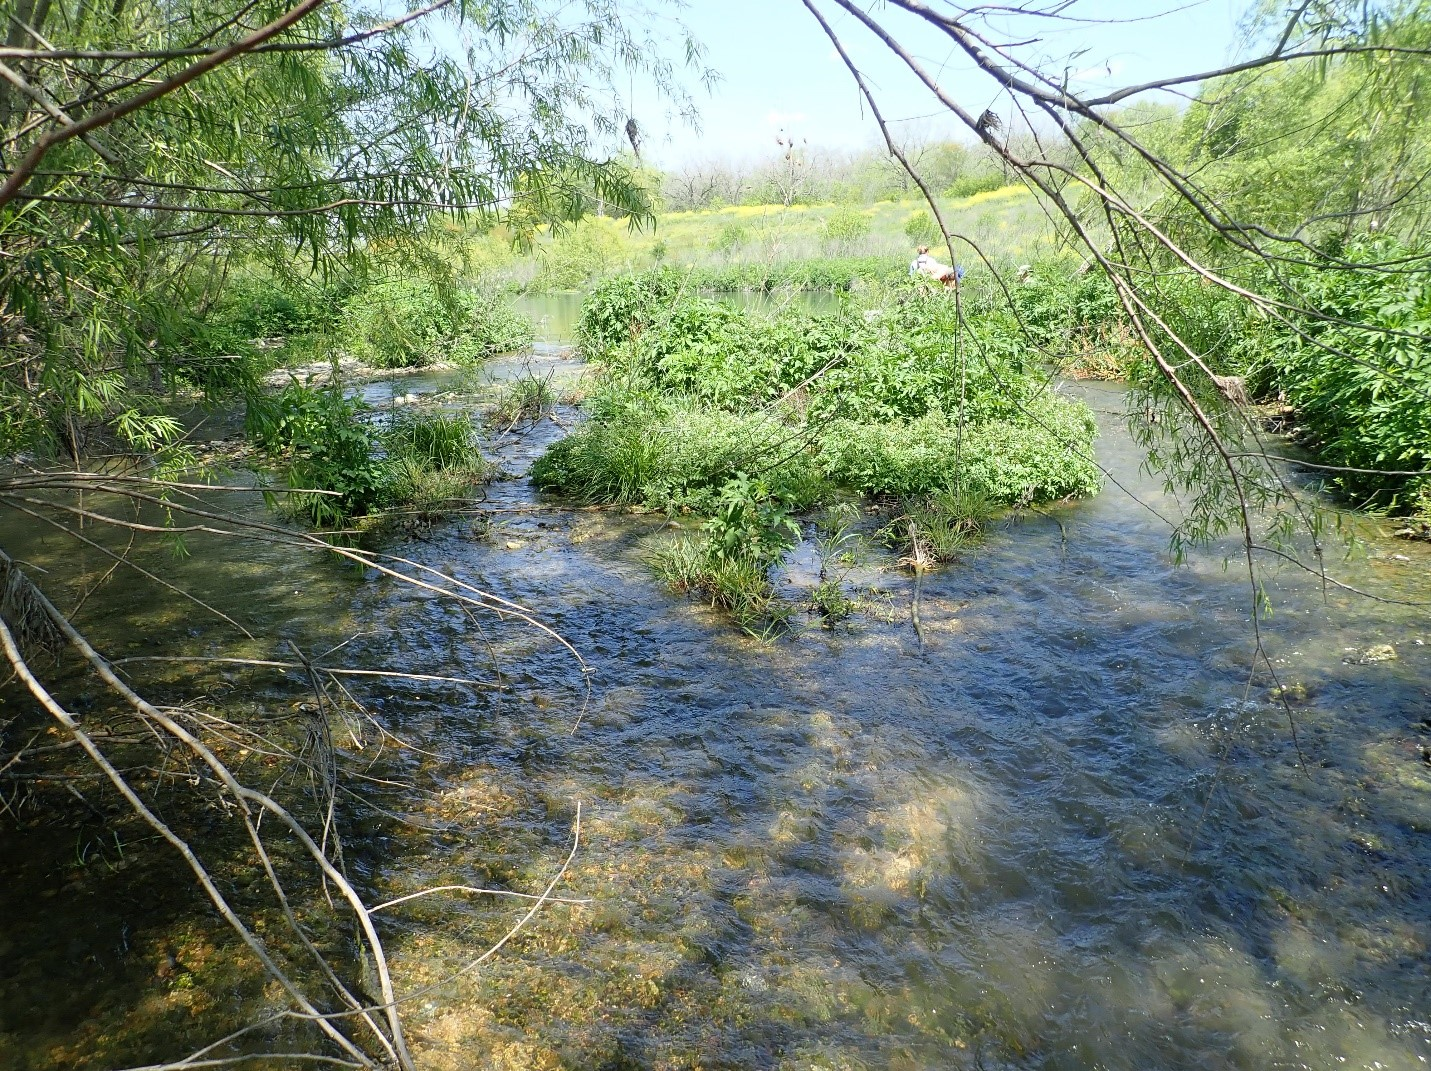 Biologists also measure things like available habitat for fish. Aquatic plants and naturally occurring riffles provide excellent habitat for all kinds of important aquatic organisms.